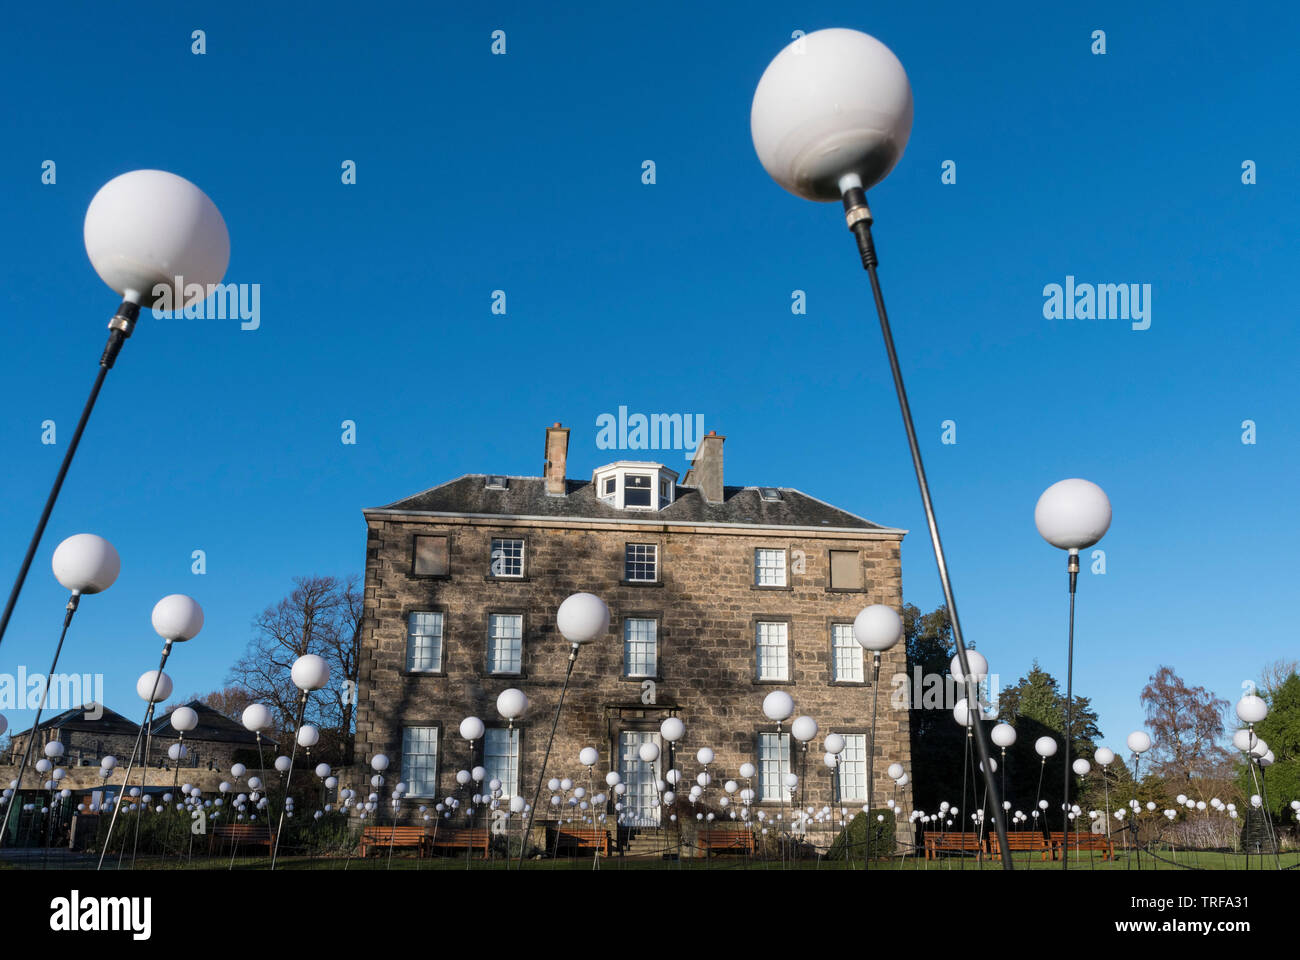 Royal Botanic Gardens, Edinburgh - Stock Image